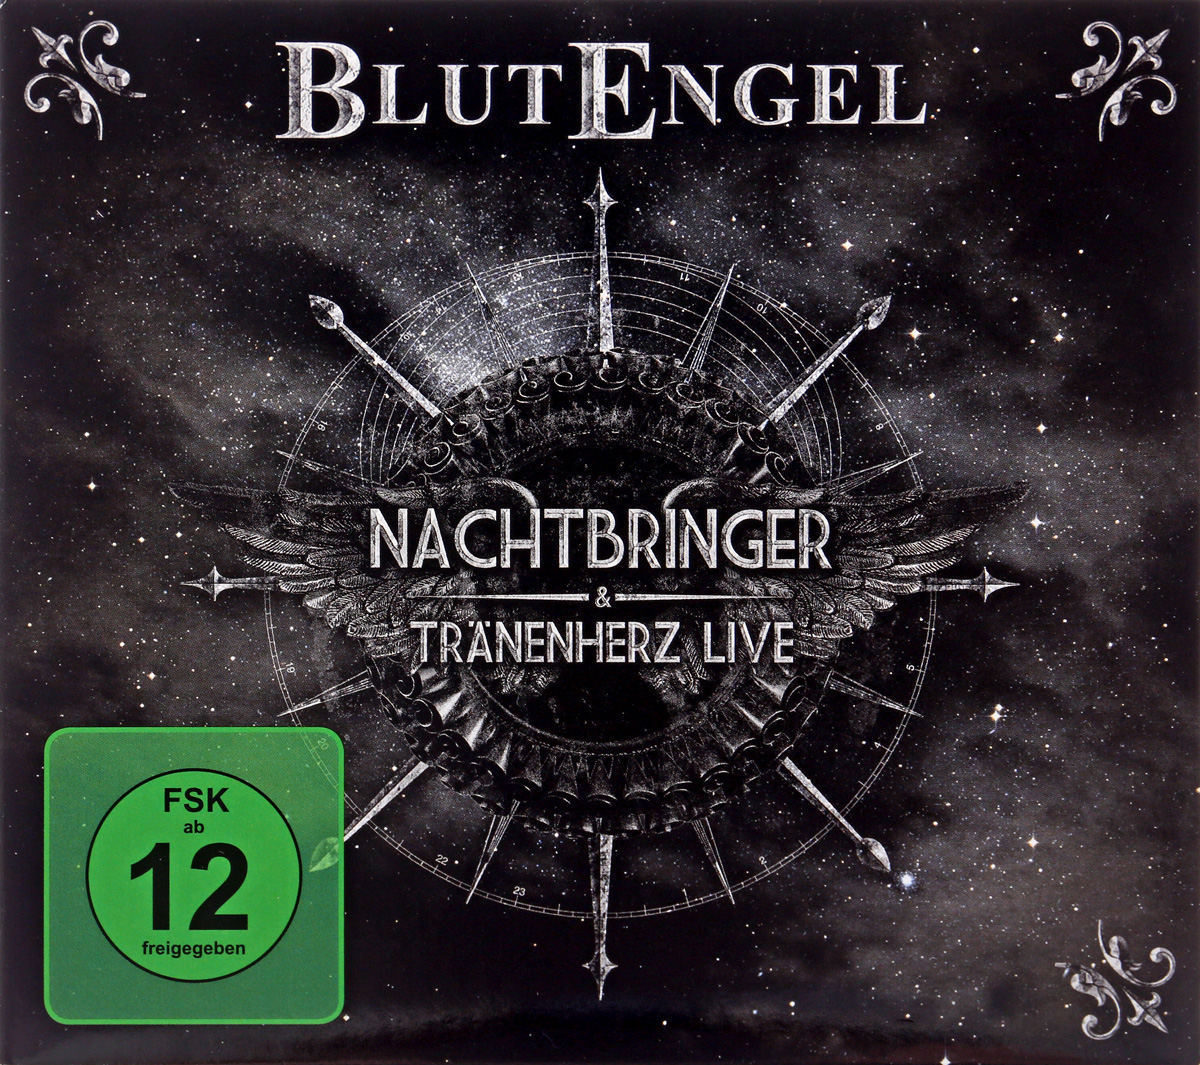 Blutengel Blutengel. Nachtbringer (Deluxe Edition) (CD+DVD) zoolect zoolect embryolody live at alexey kozlov club deluxe numbered edition cd dvd